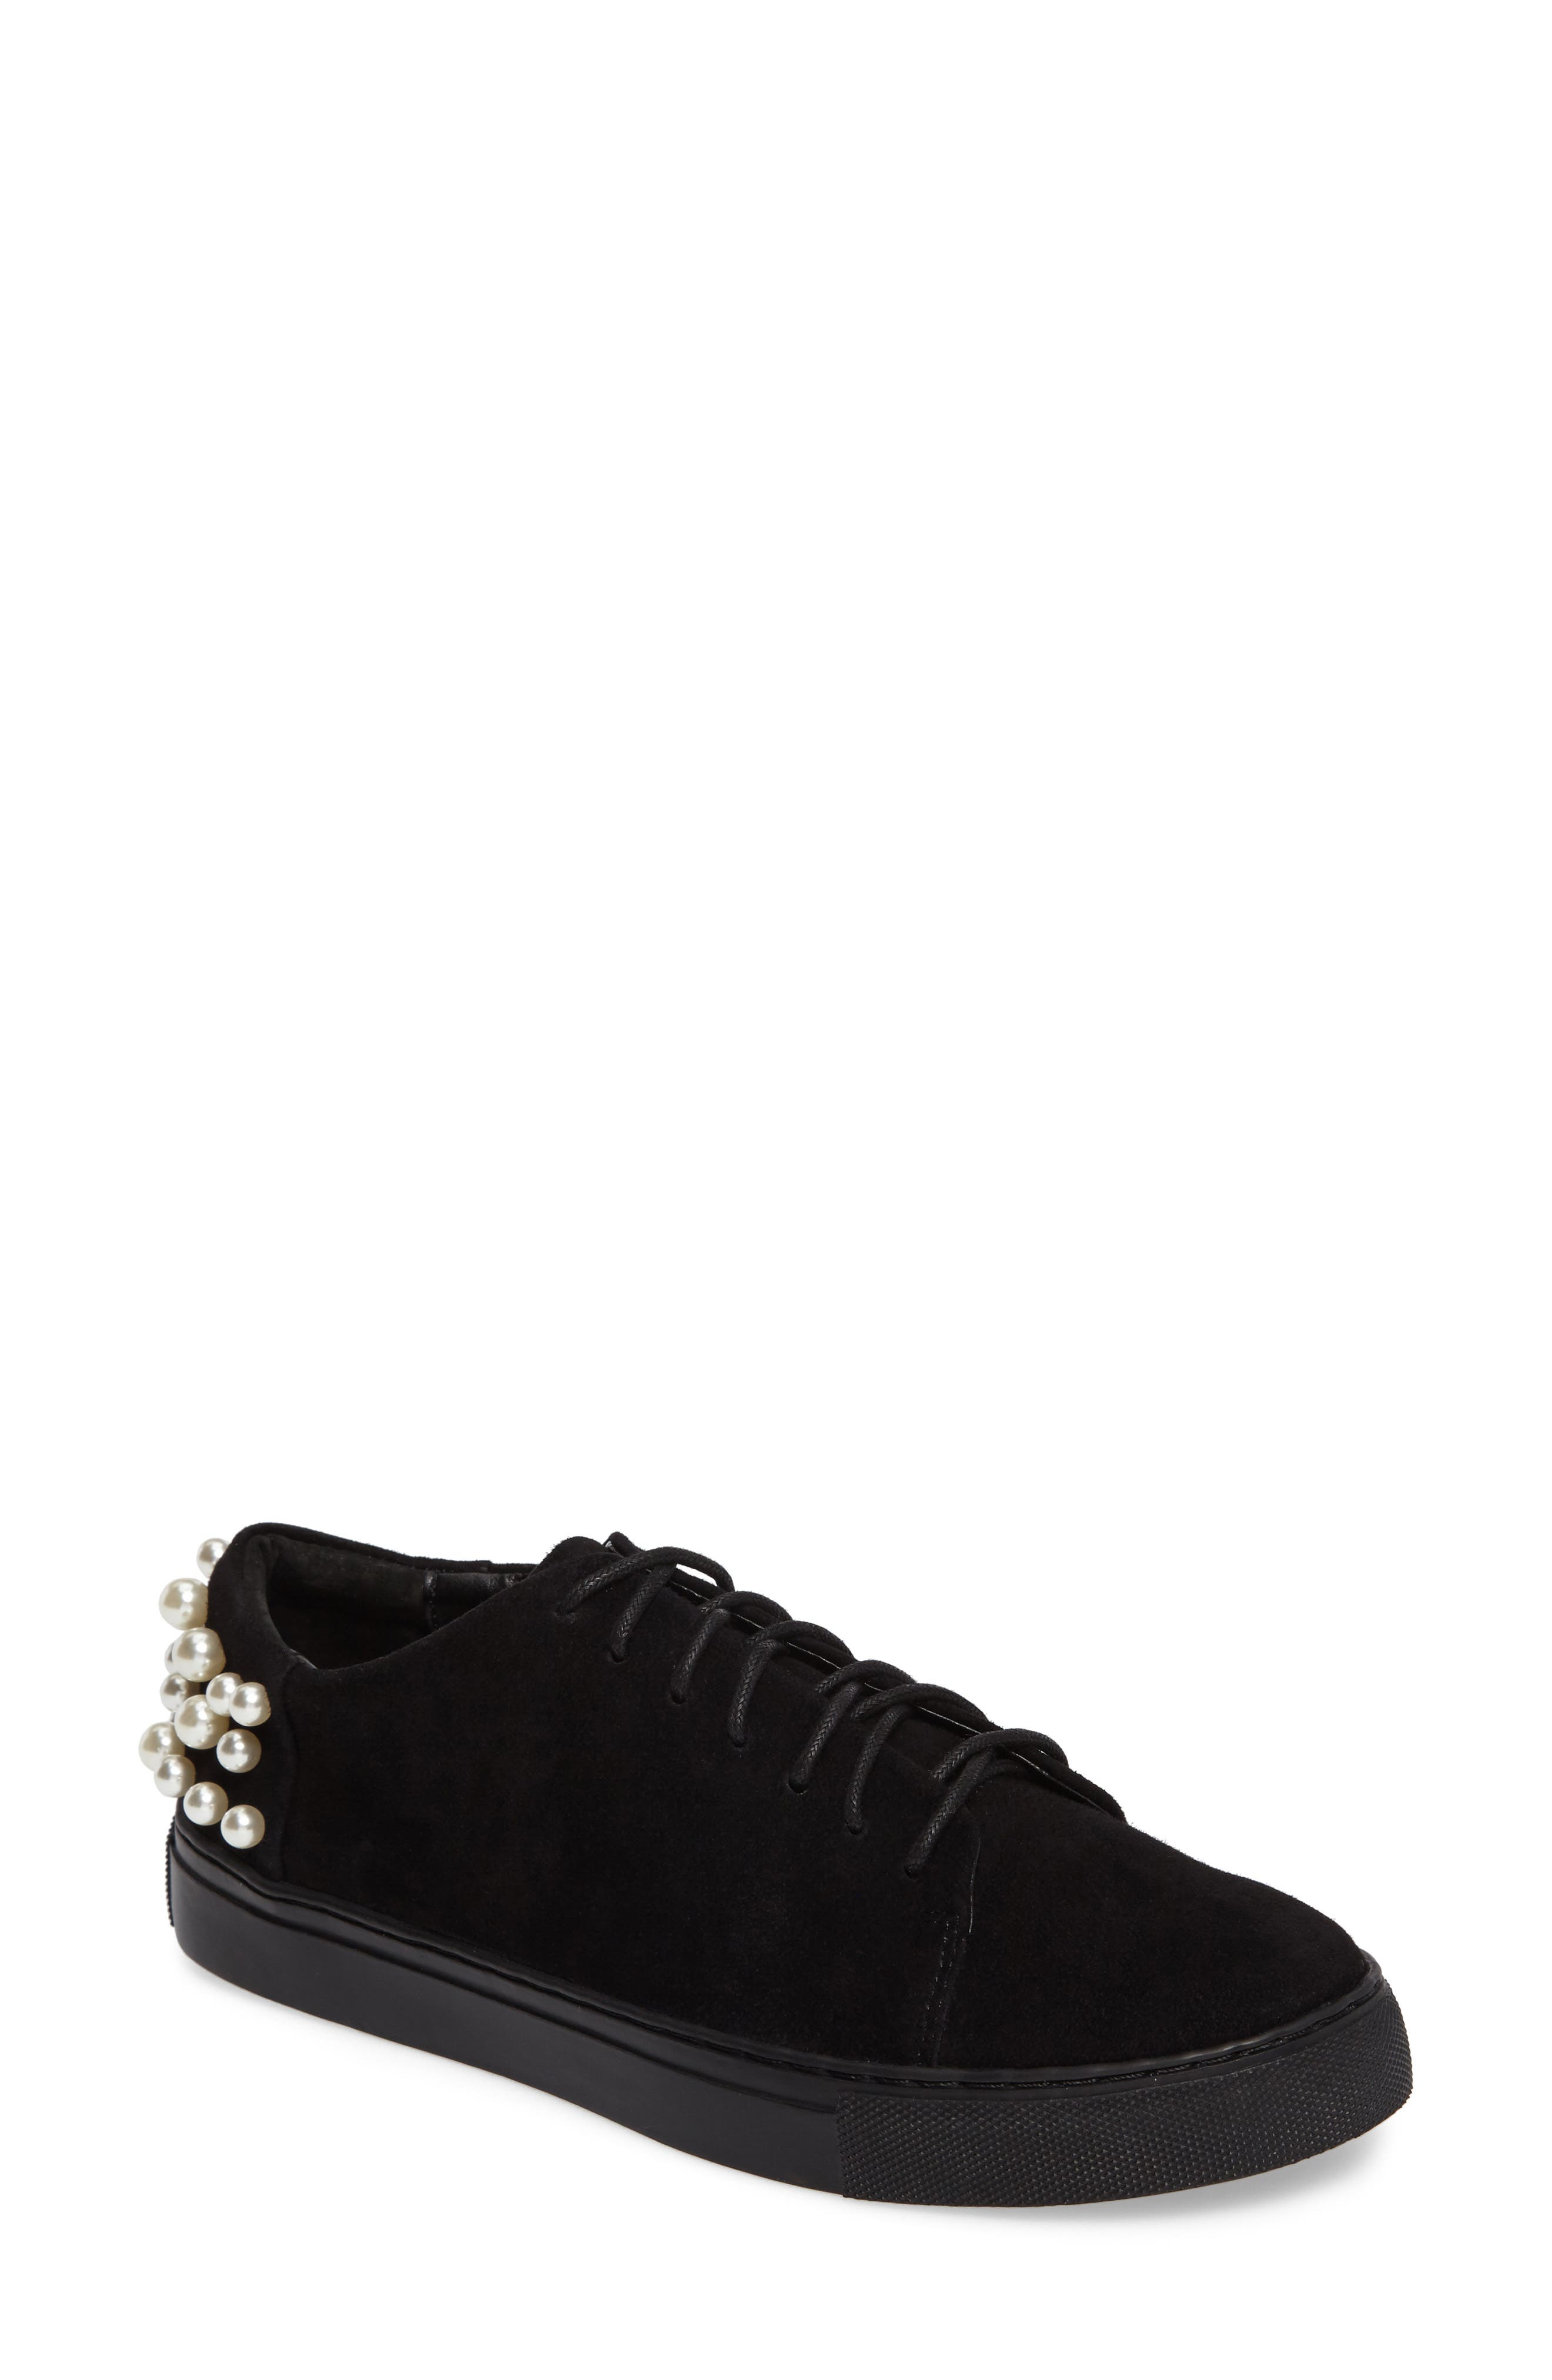 E8 by Miista Haig Embellished Sneaker (Women)